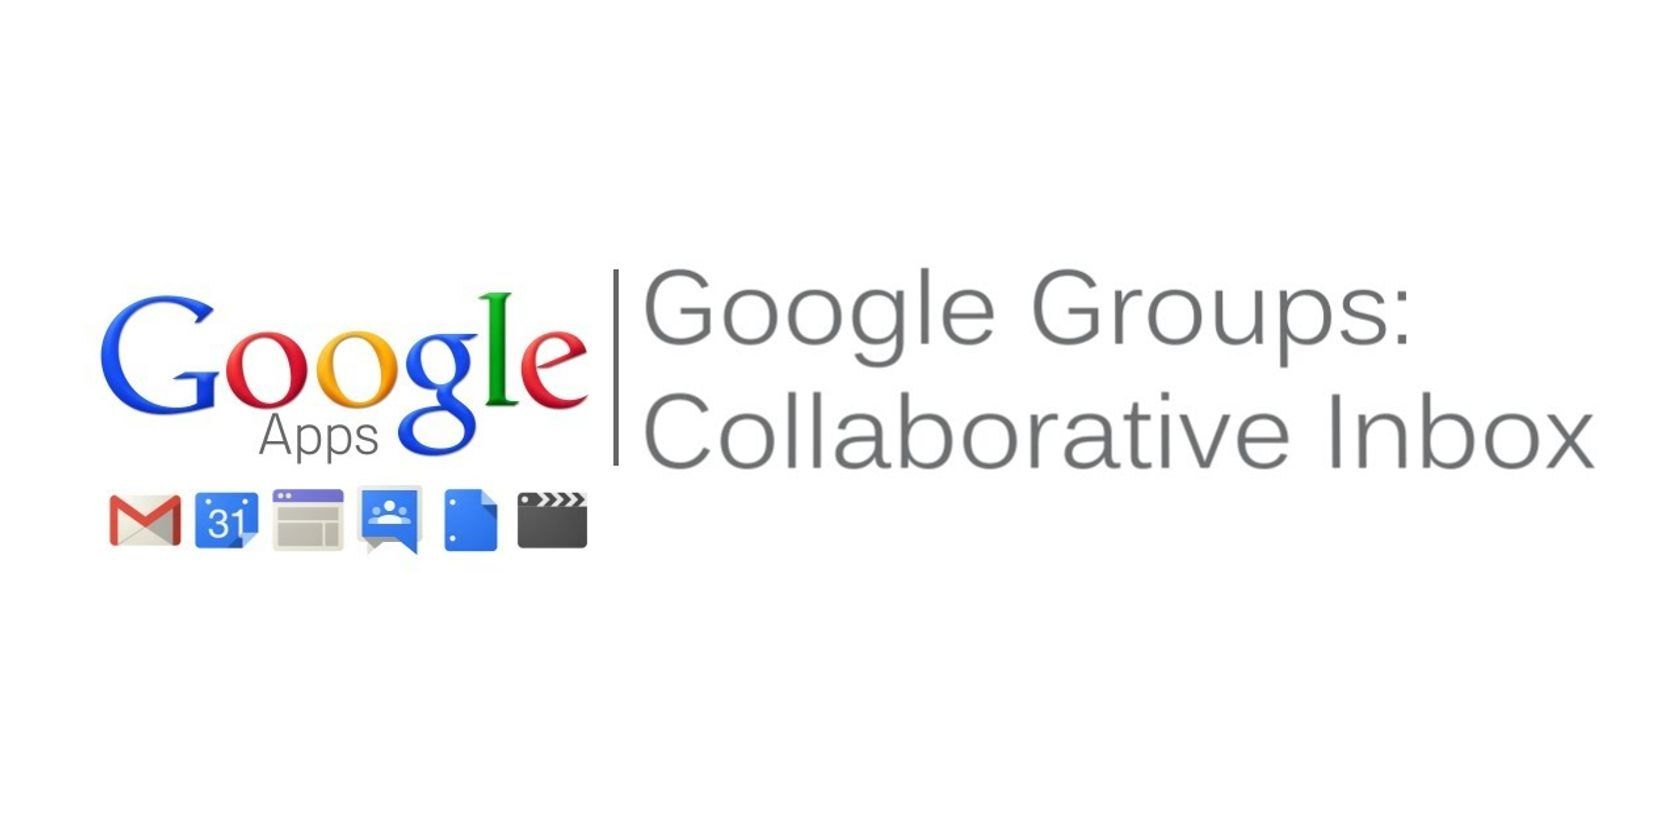 How to Create a Collaborative Inbox in G Suite